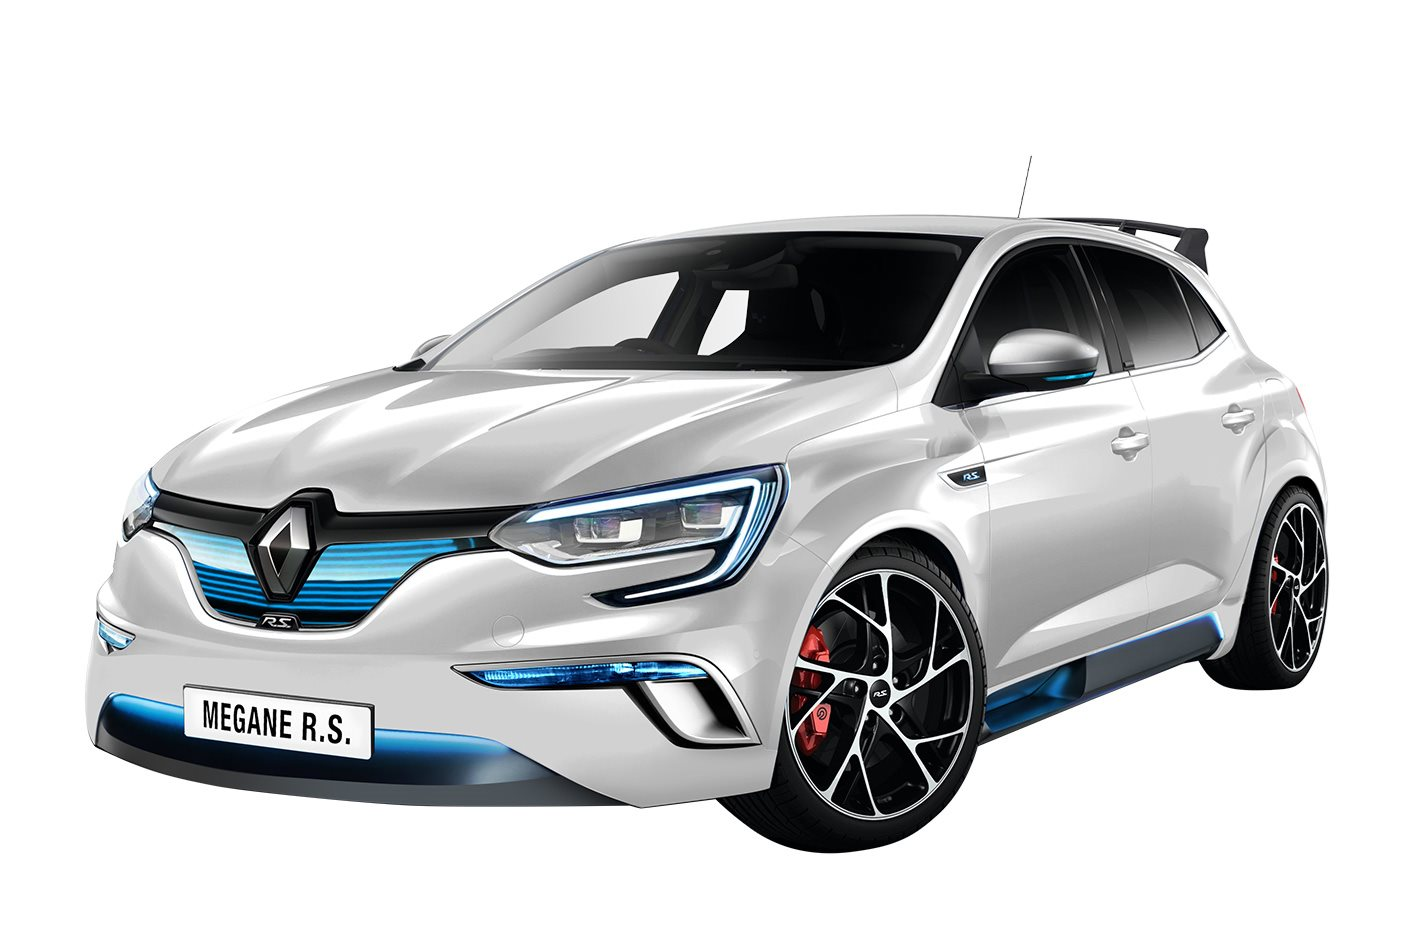 renault sport weighs up hybrid megane rs hot hatch wheels. Black Bedroom Furniture Sets. Home Design Ideas